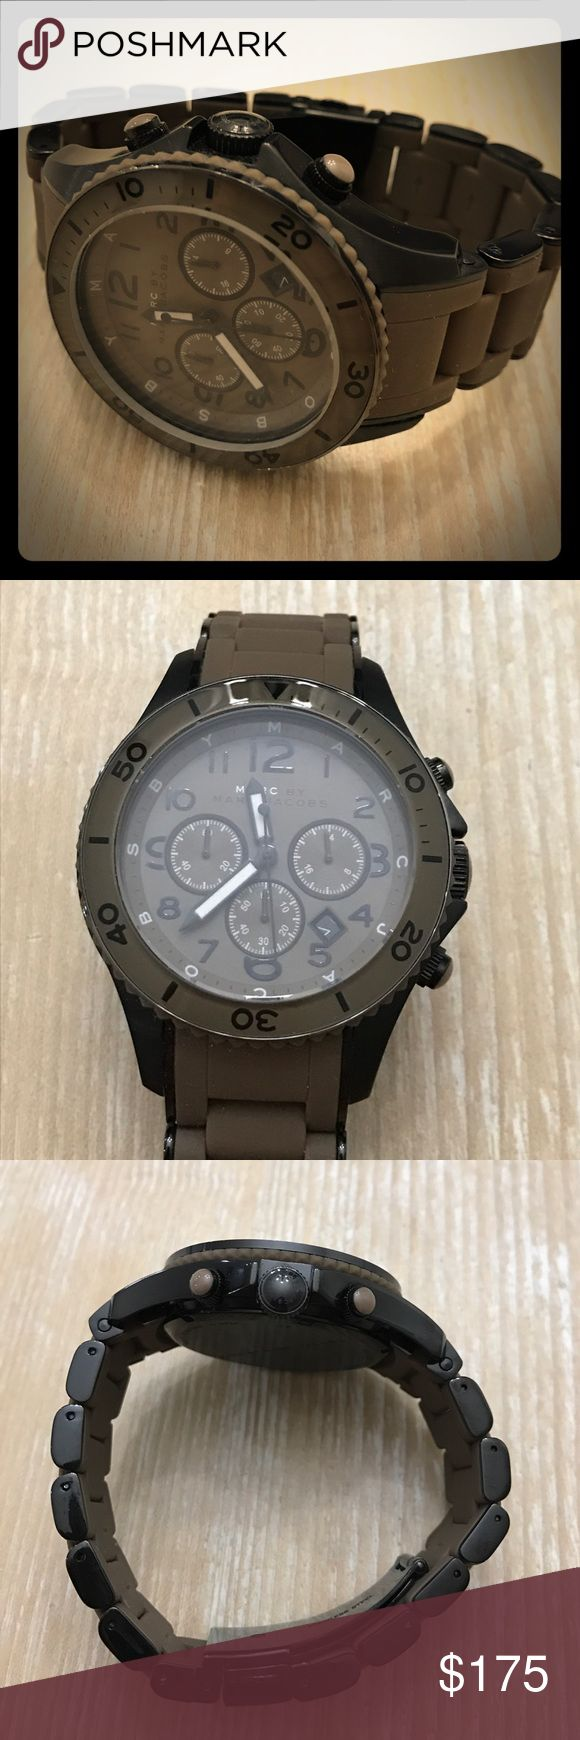 Brand new MARC by MARC JACOBS MENS WATCH Brand new MARC by MARC JACOBS MENS WATCH. Never worn. I purchased for a gift for my HUSBAND who never once wore it. So now it's time to find it a new owner who will appreciate it! Marc by Marc Jacobs Accessories Watches